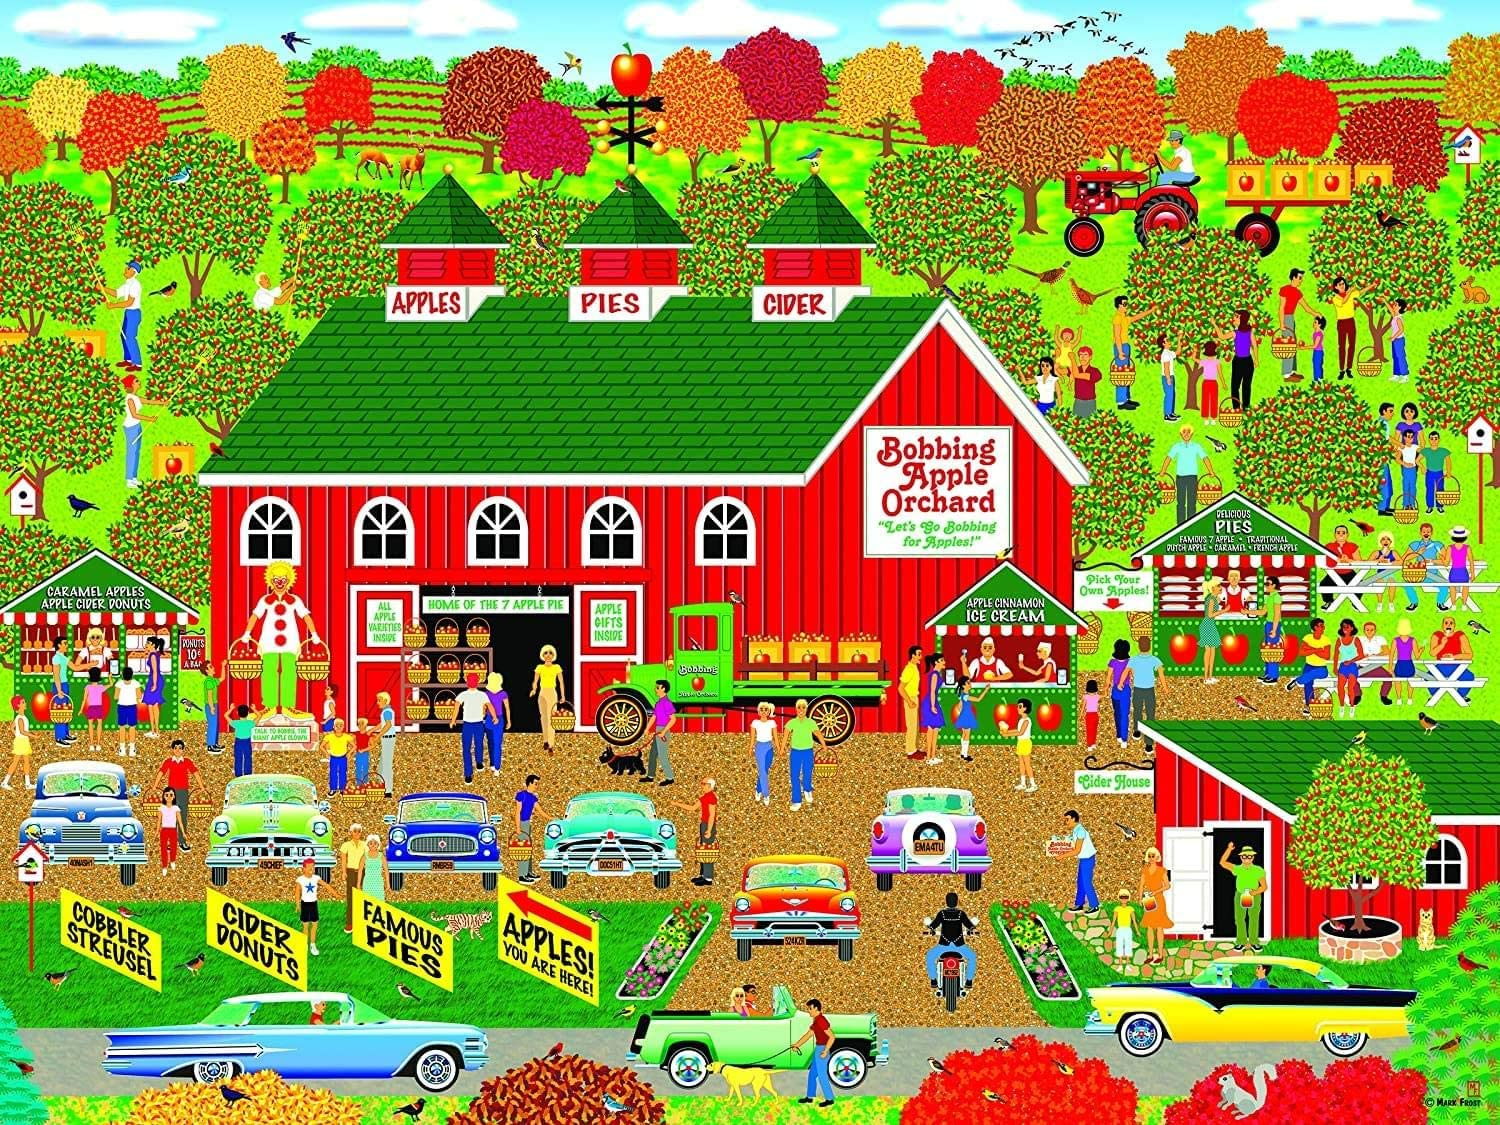 Bobbing Apple Orchard Farm, Home Country Collection 1000 Piece Jigsaw Puzzle by Artist: Mark Frost